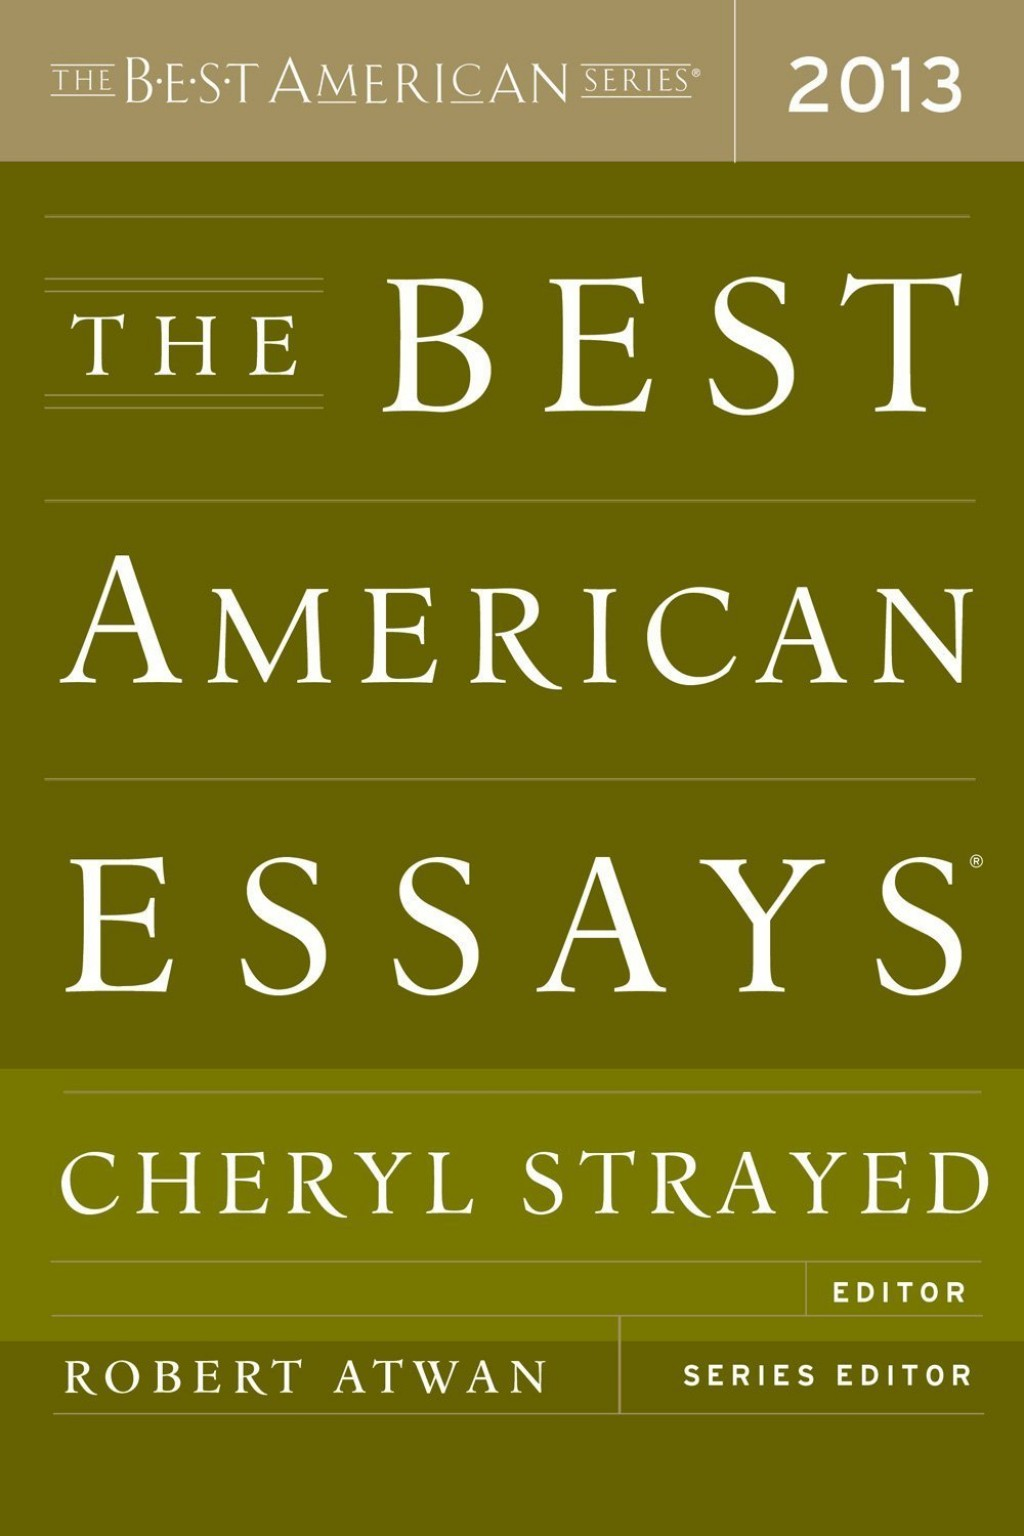 003 Best American Essays Essay Example Striking 2017 Table Of Contents The Century Pdf Large